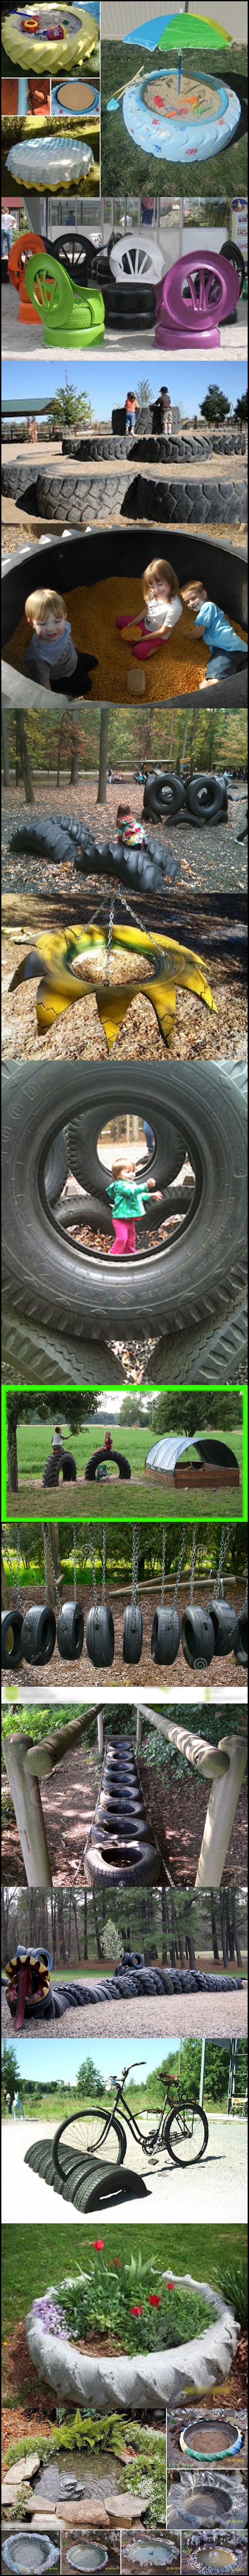 tire ideas Wonderful DIY 10 ways to reuse old tires